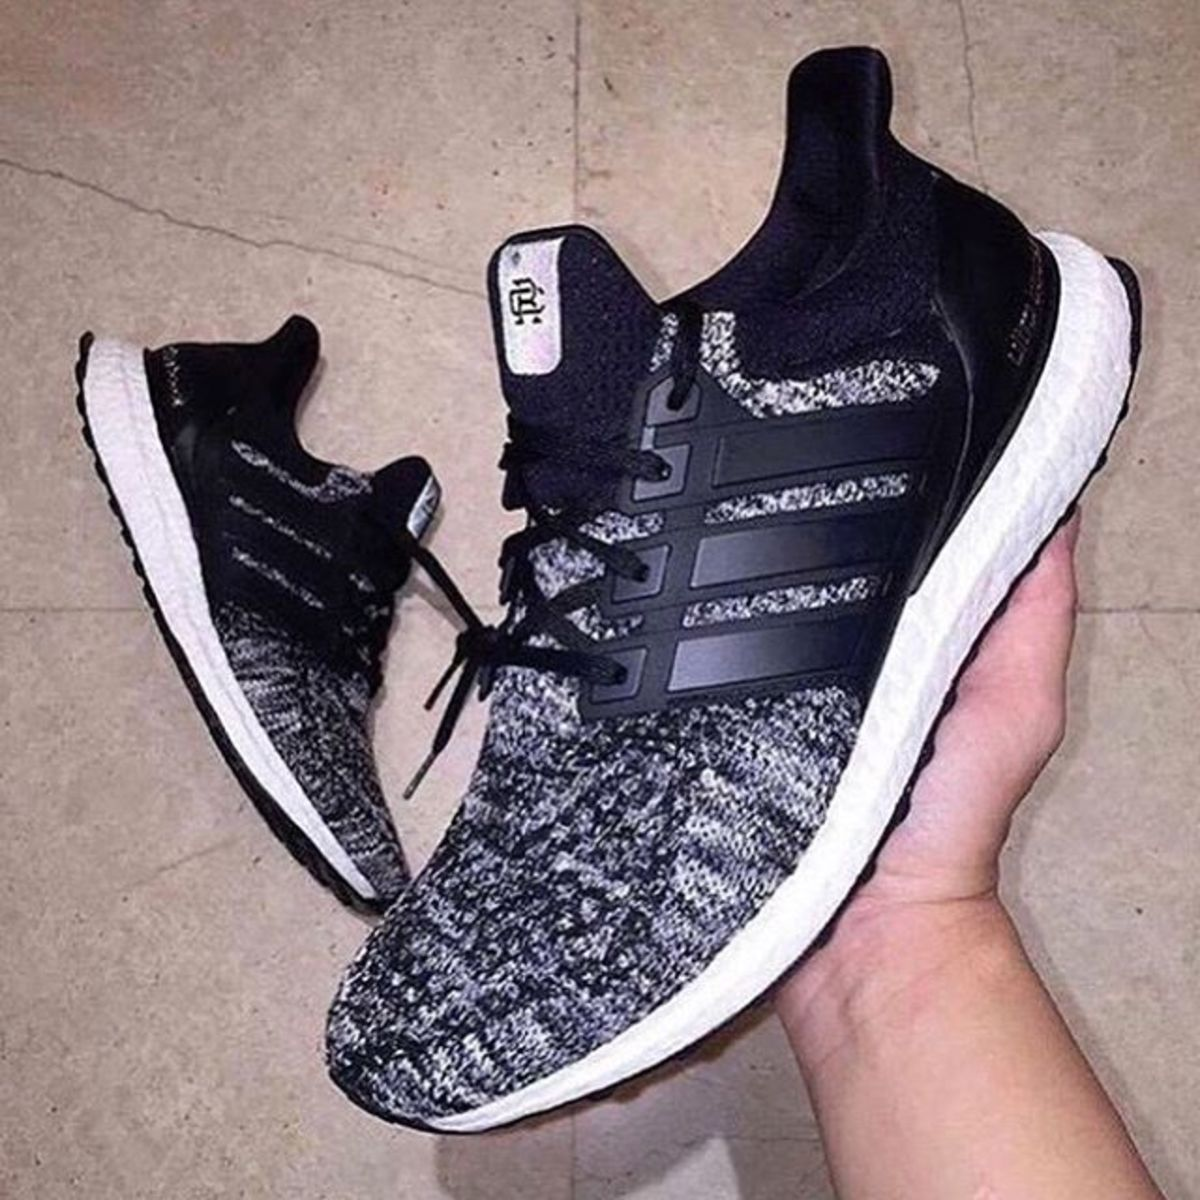 reigning-champ-adidas-ultra-boost-01.jpg